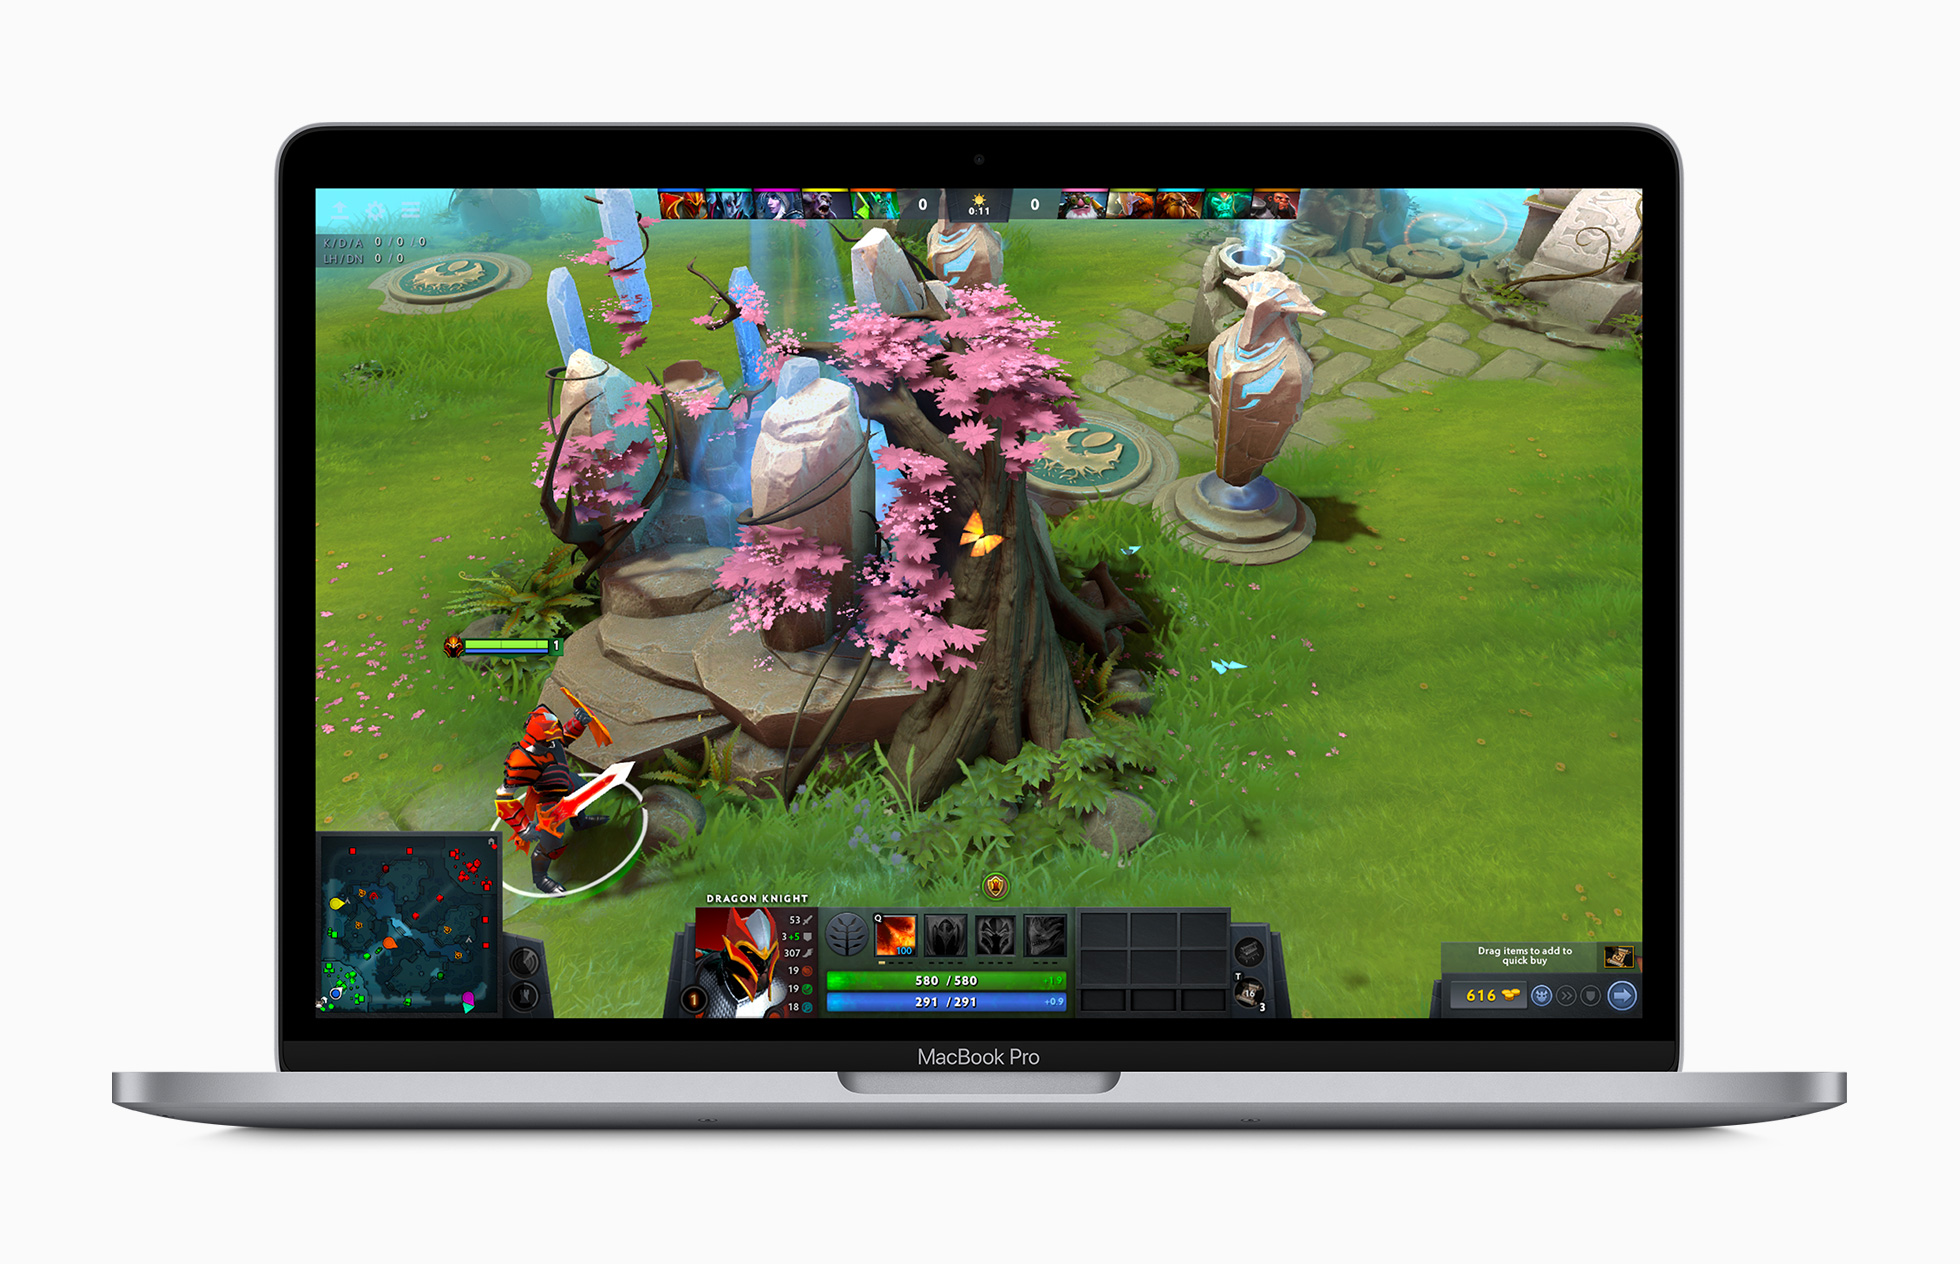 Apple_macbook_pro-13-inch-with-dota-2-game_screen_05042020_big.jpg.large_2x.jpg (1960×1264)